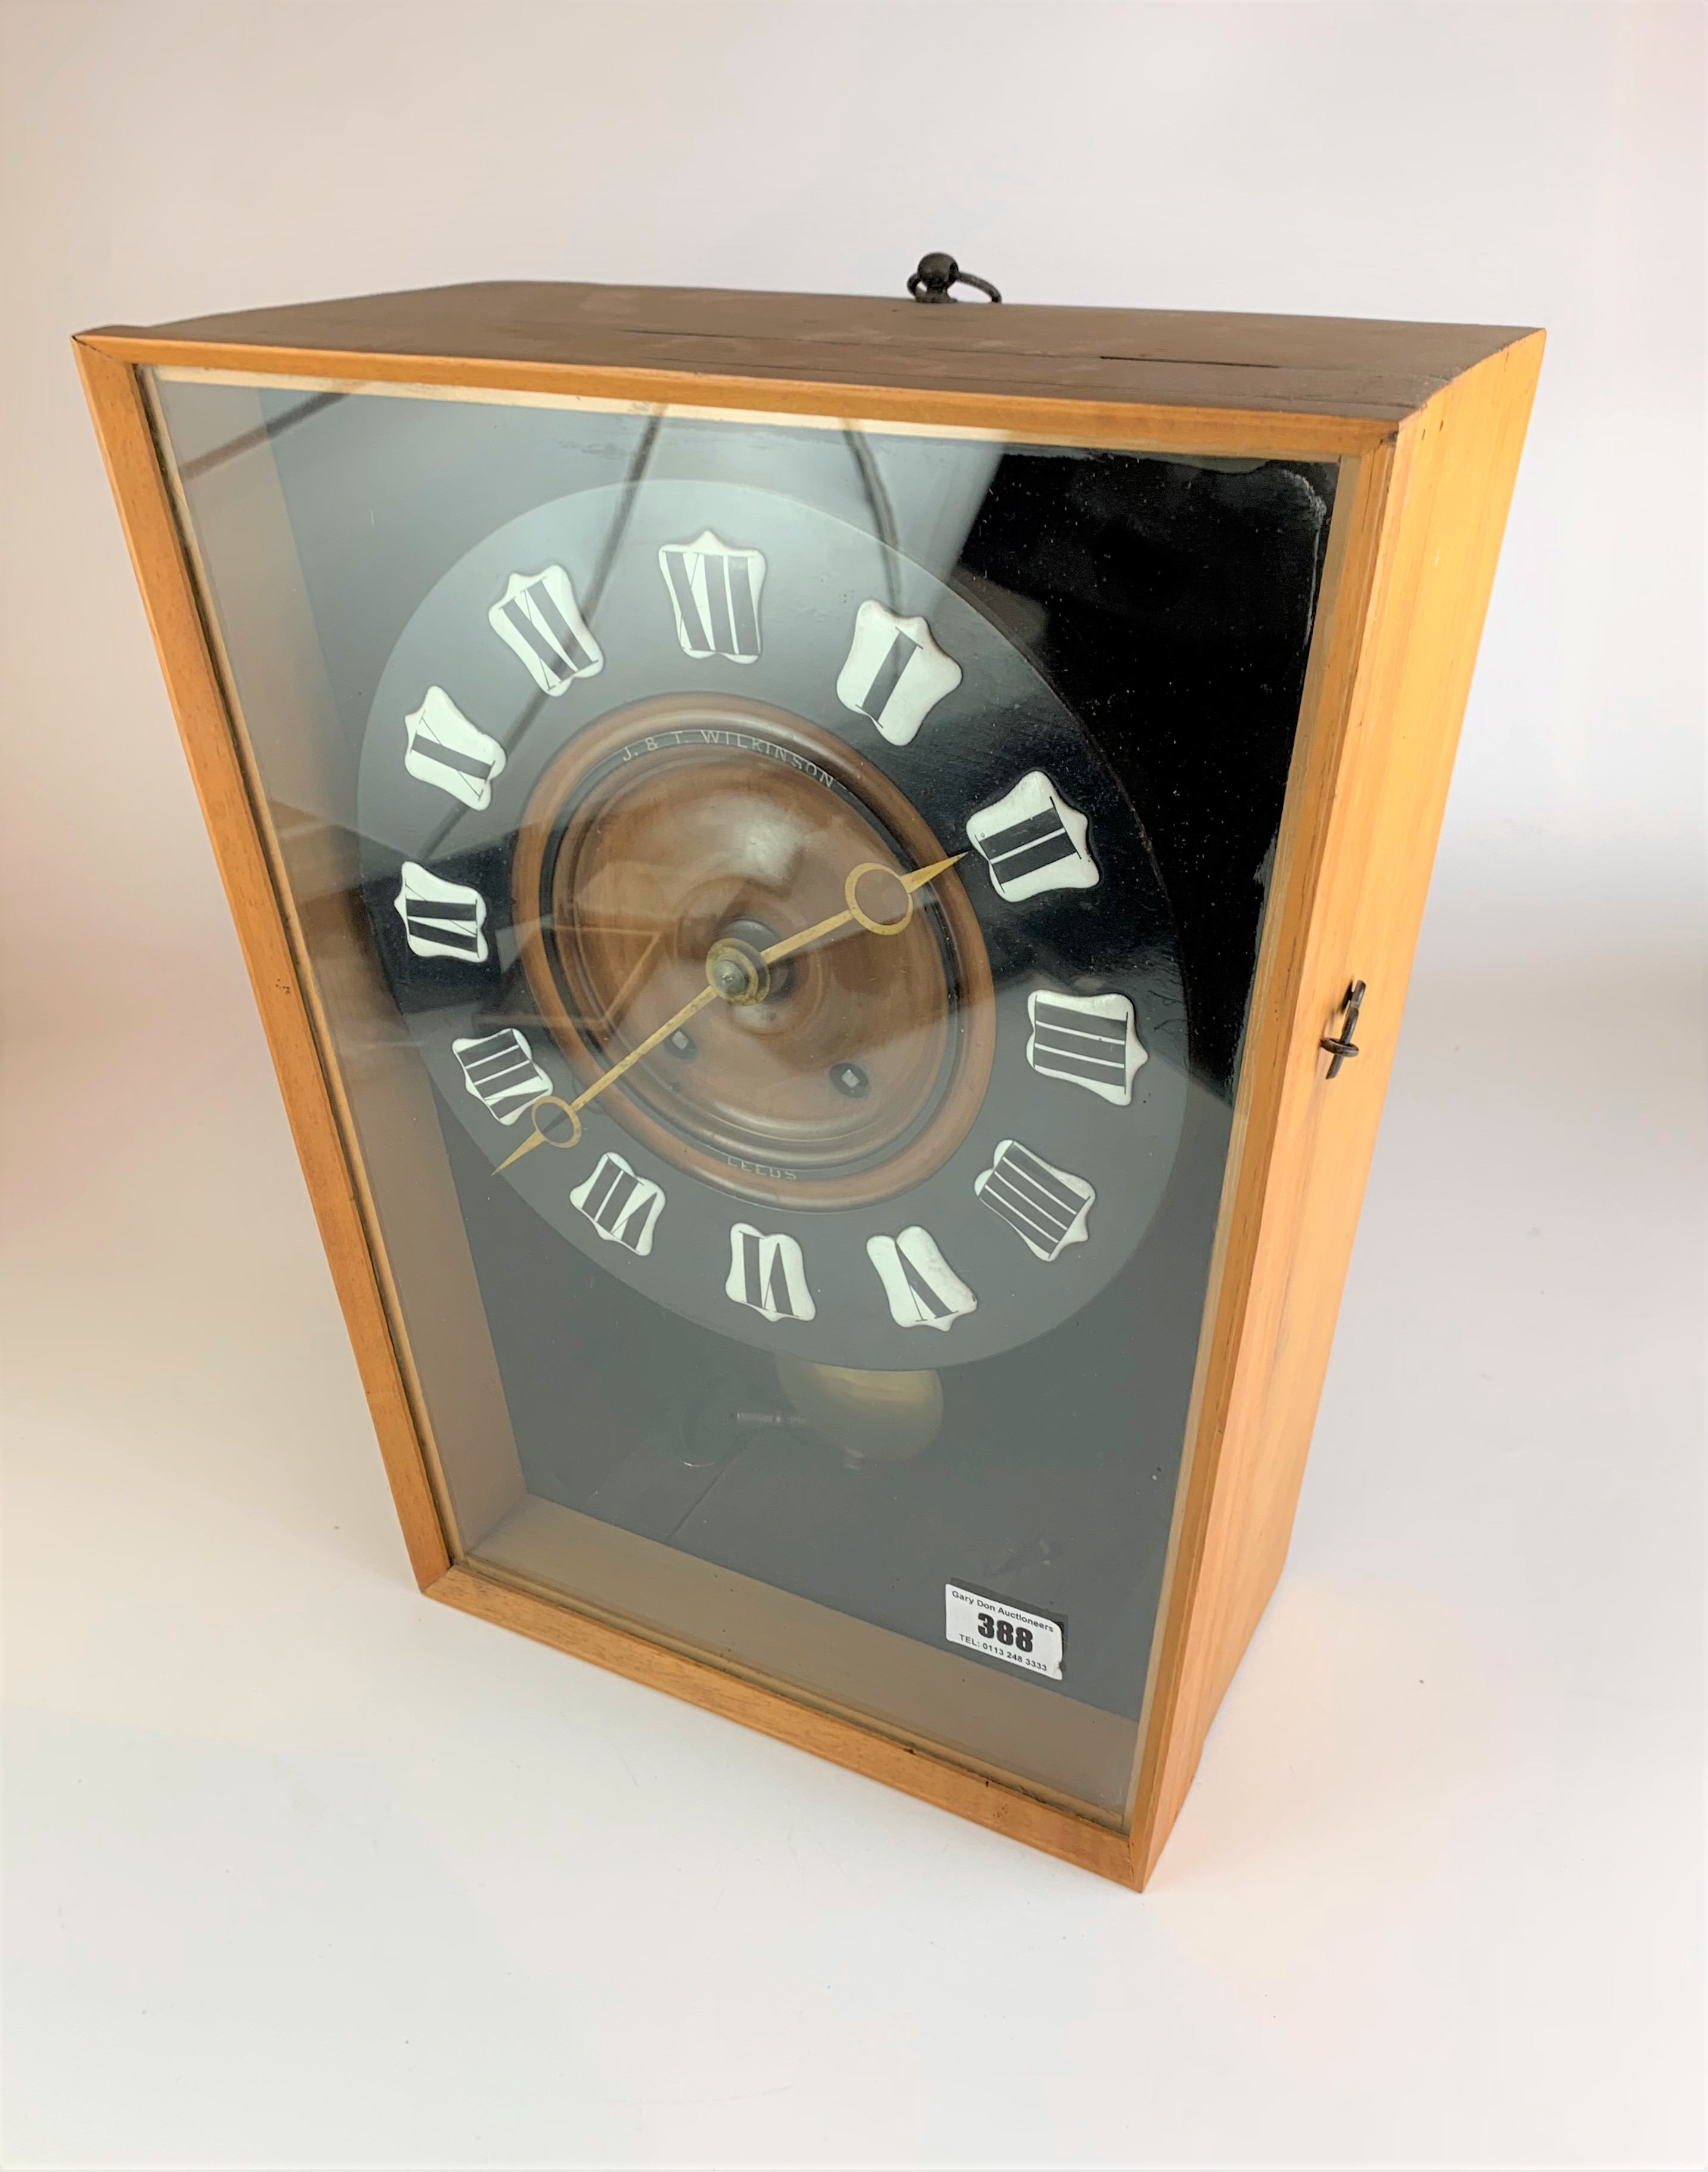 """Unusual wall clock by J & T Wilkinson, Leeds with pendulum and key, 15"""" high x 13"""" wide - Image 3 of 4"""